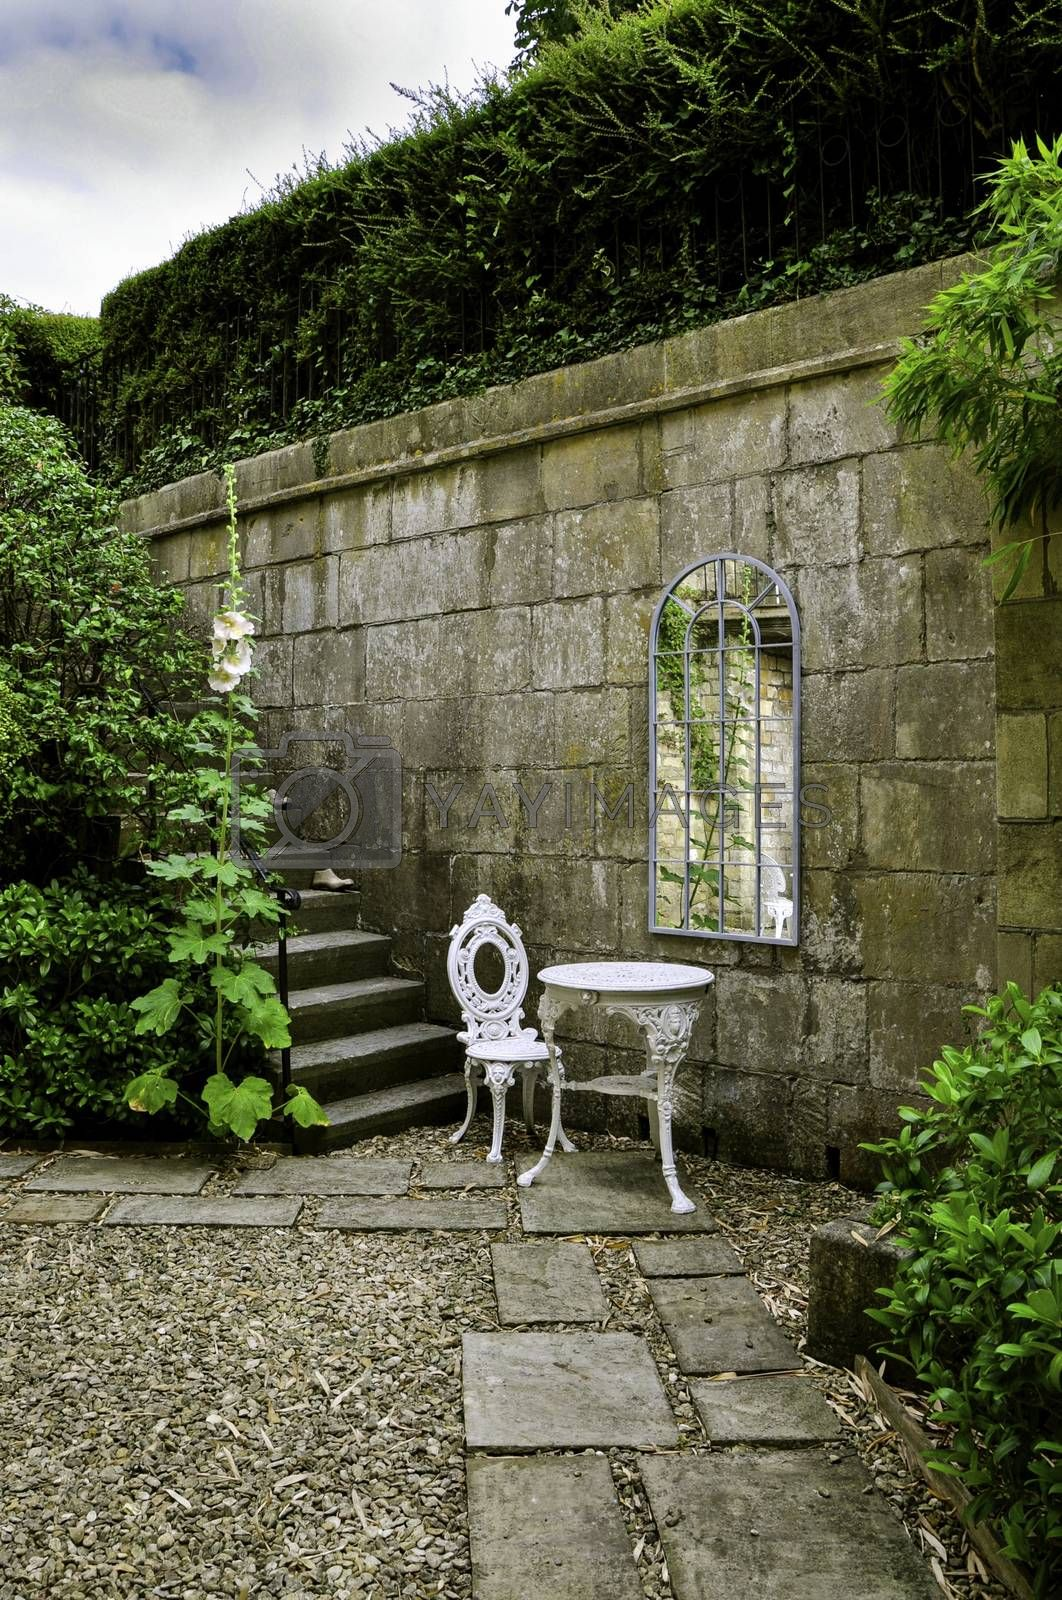 A stone walled cottage garden with steps, shrubs and hollyhocks. The wall is decorated with a Georgian mirror infront of an ornate white wrought iron table and chair set of garden furniture.